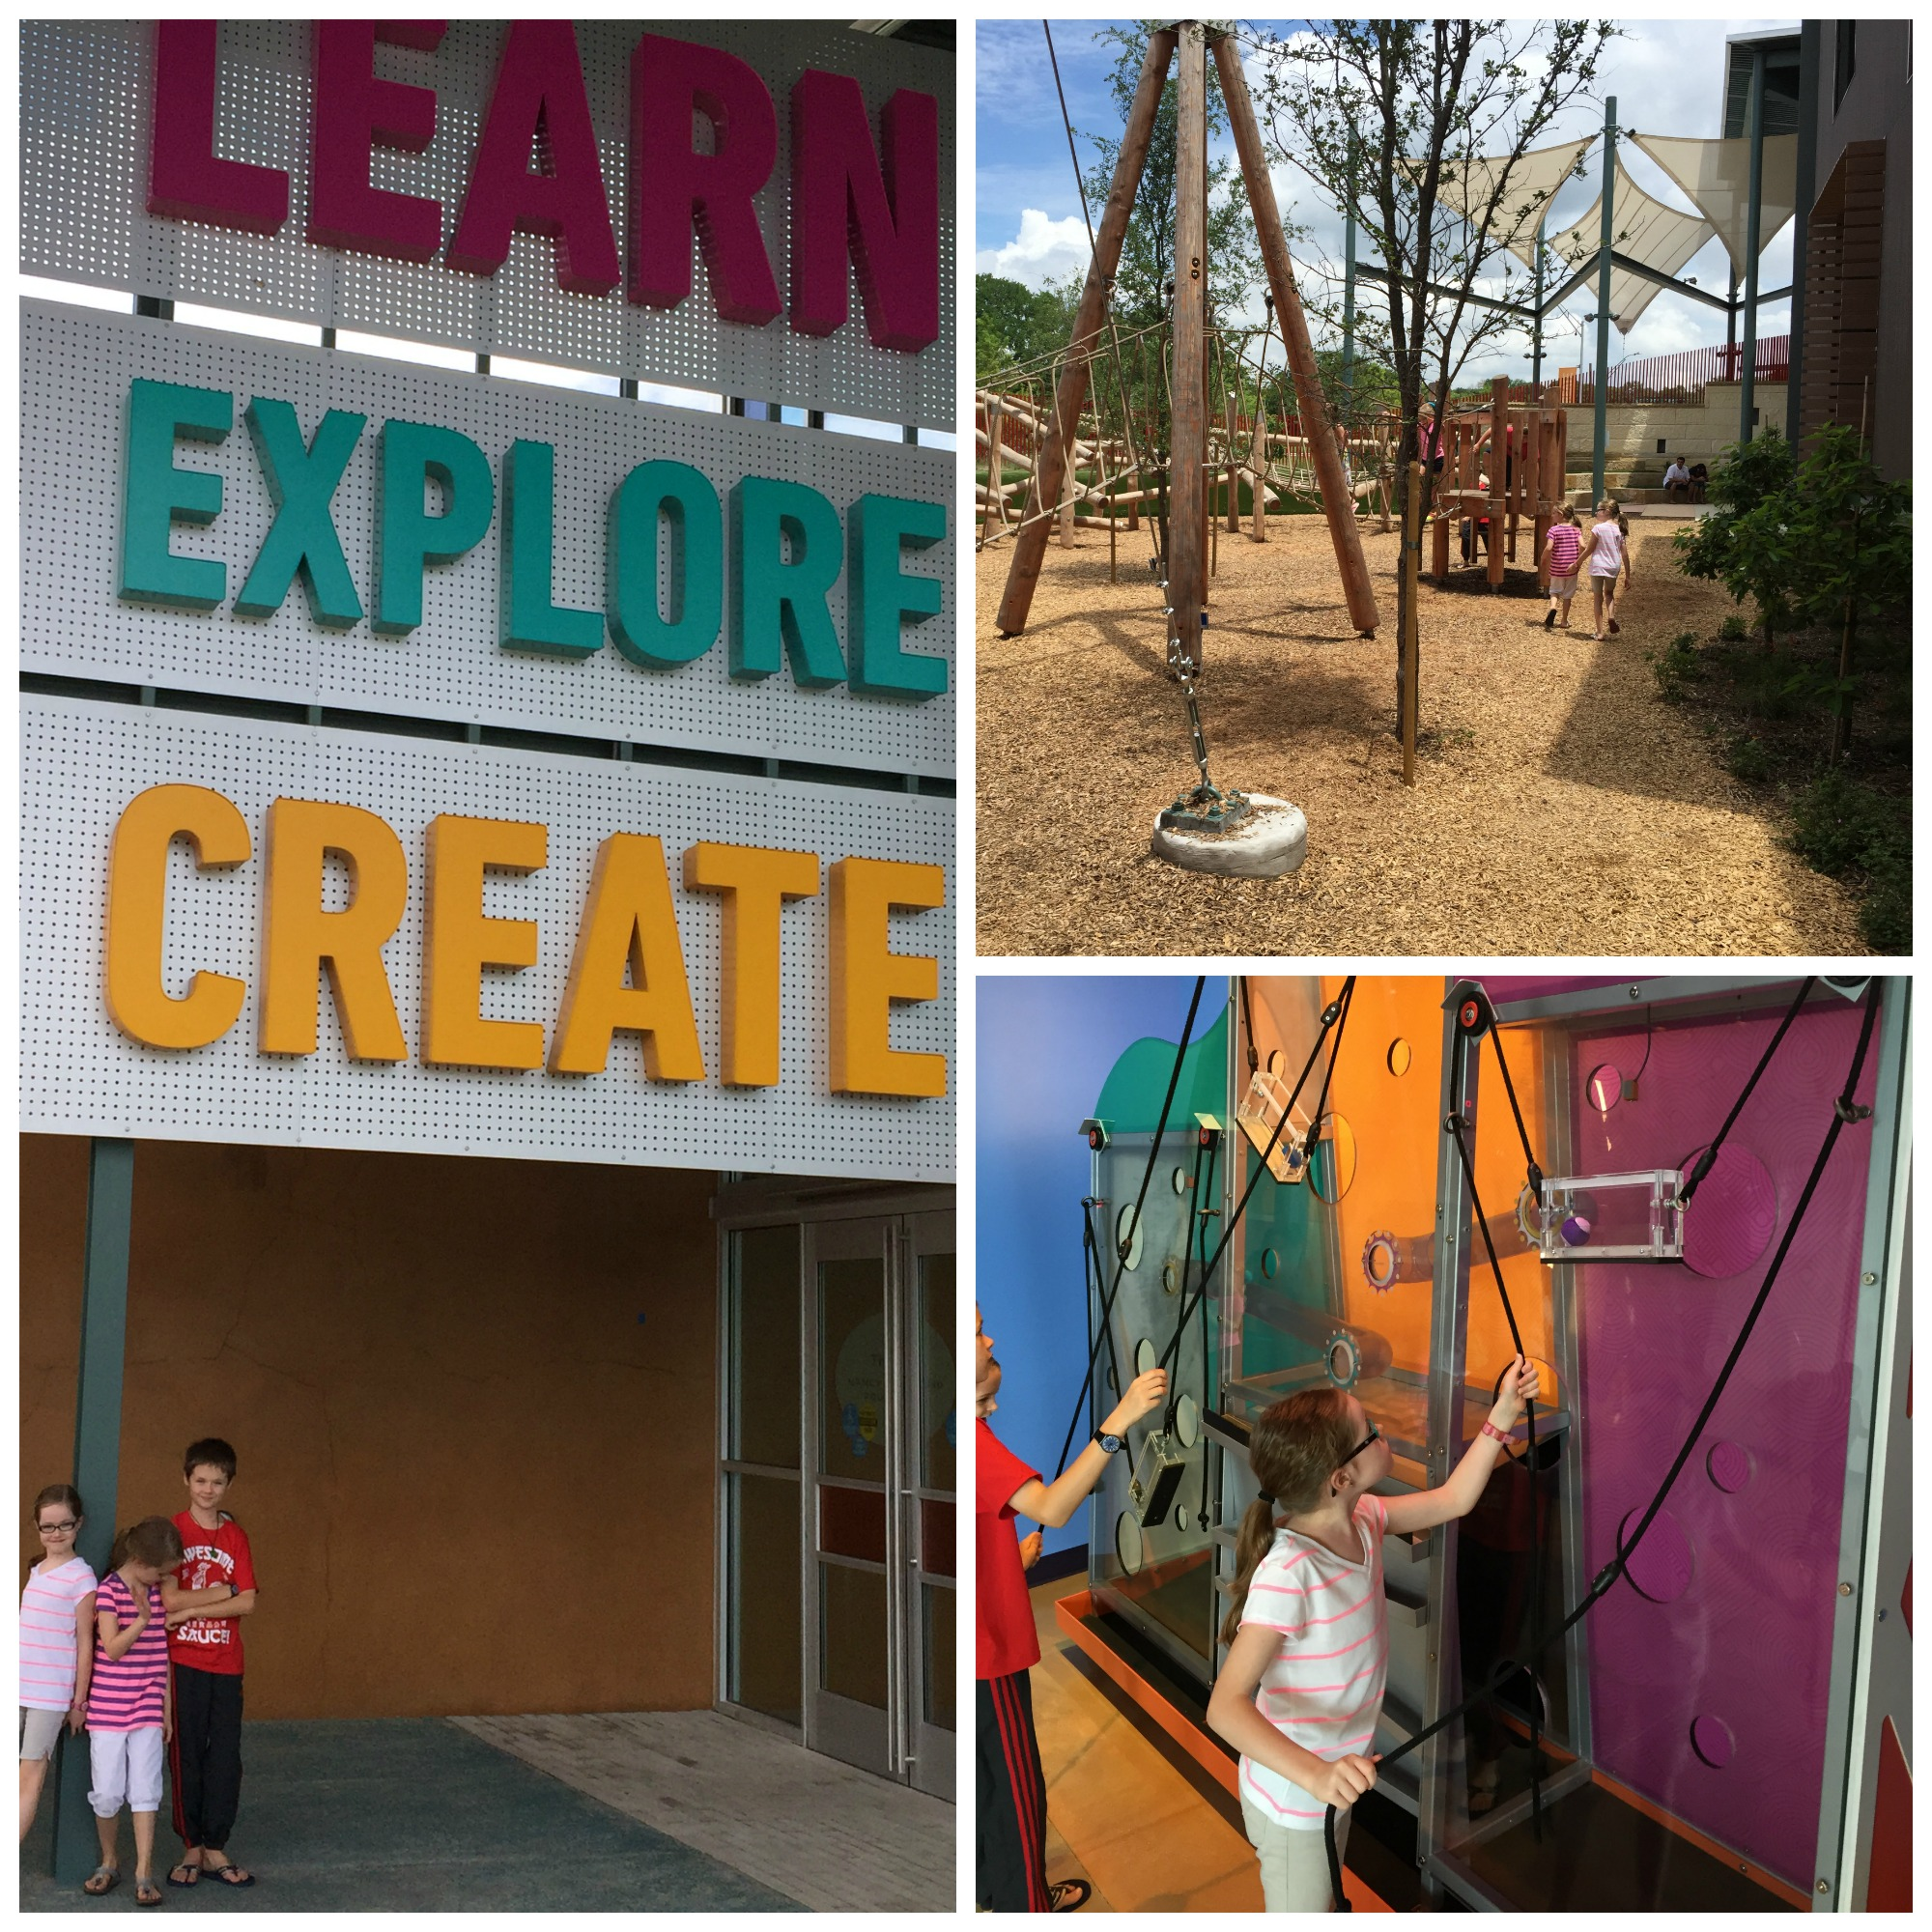 10 Fun Things To Do In San Antonio With Kids